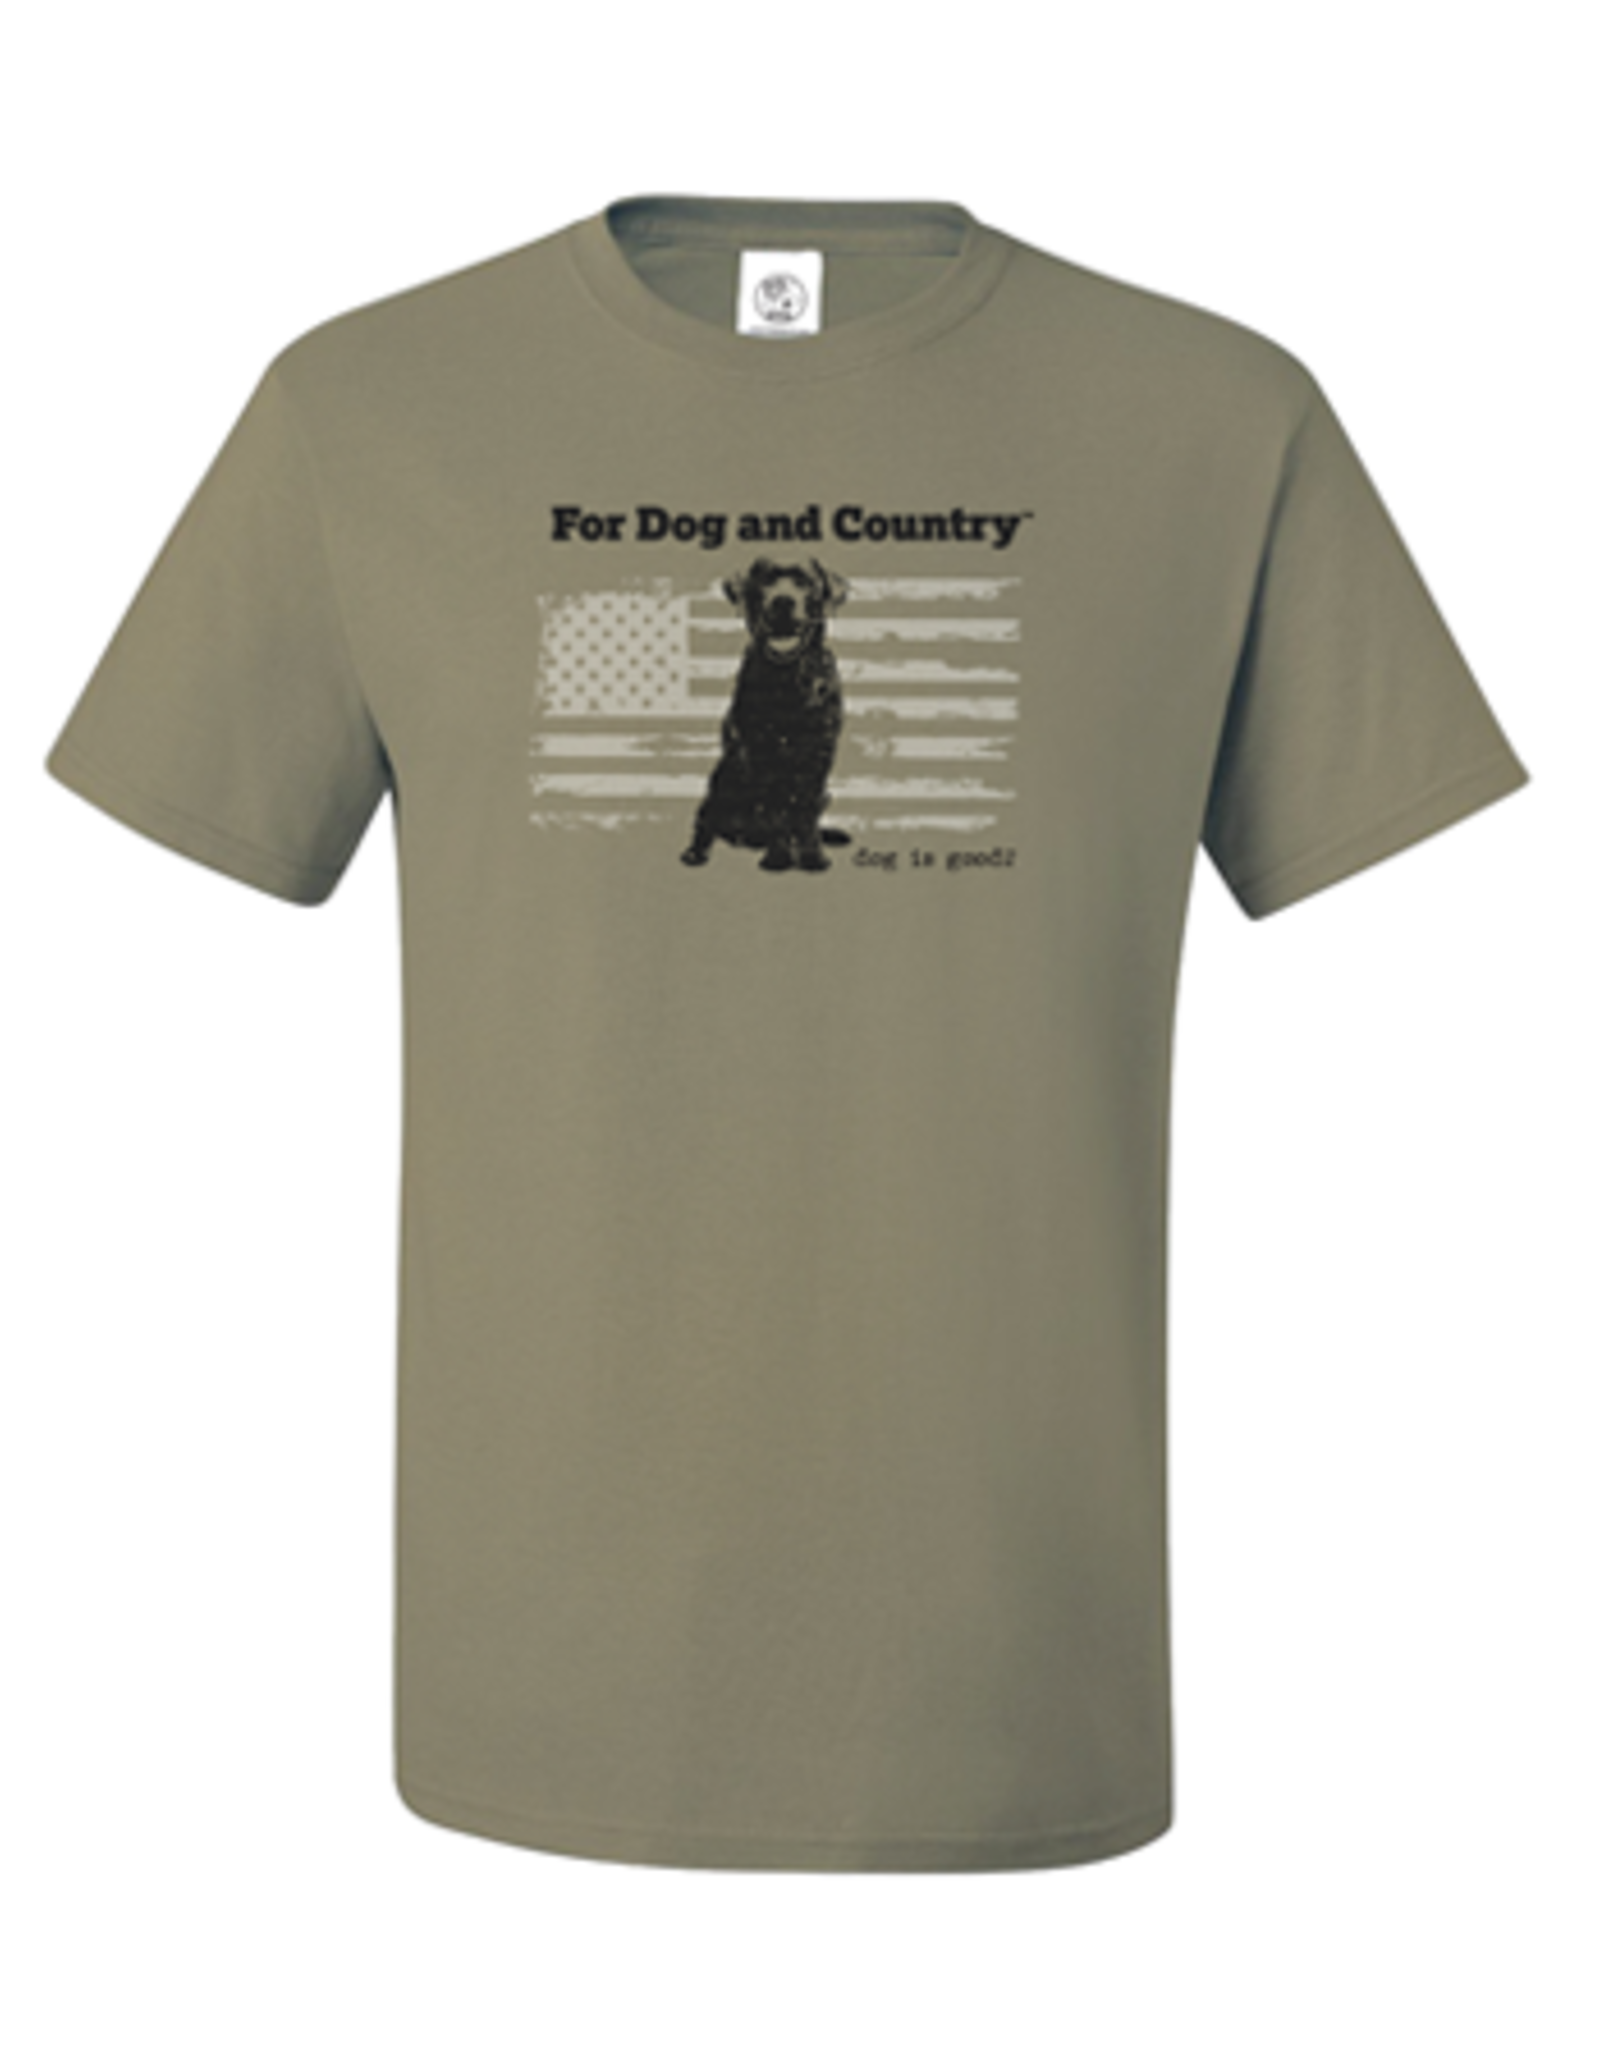 Dog Is Good Dog Is Good For Dog and Country T-Shirt Unisex